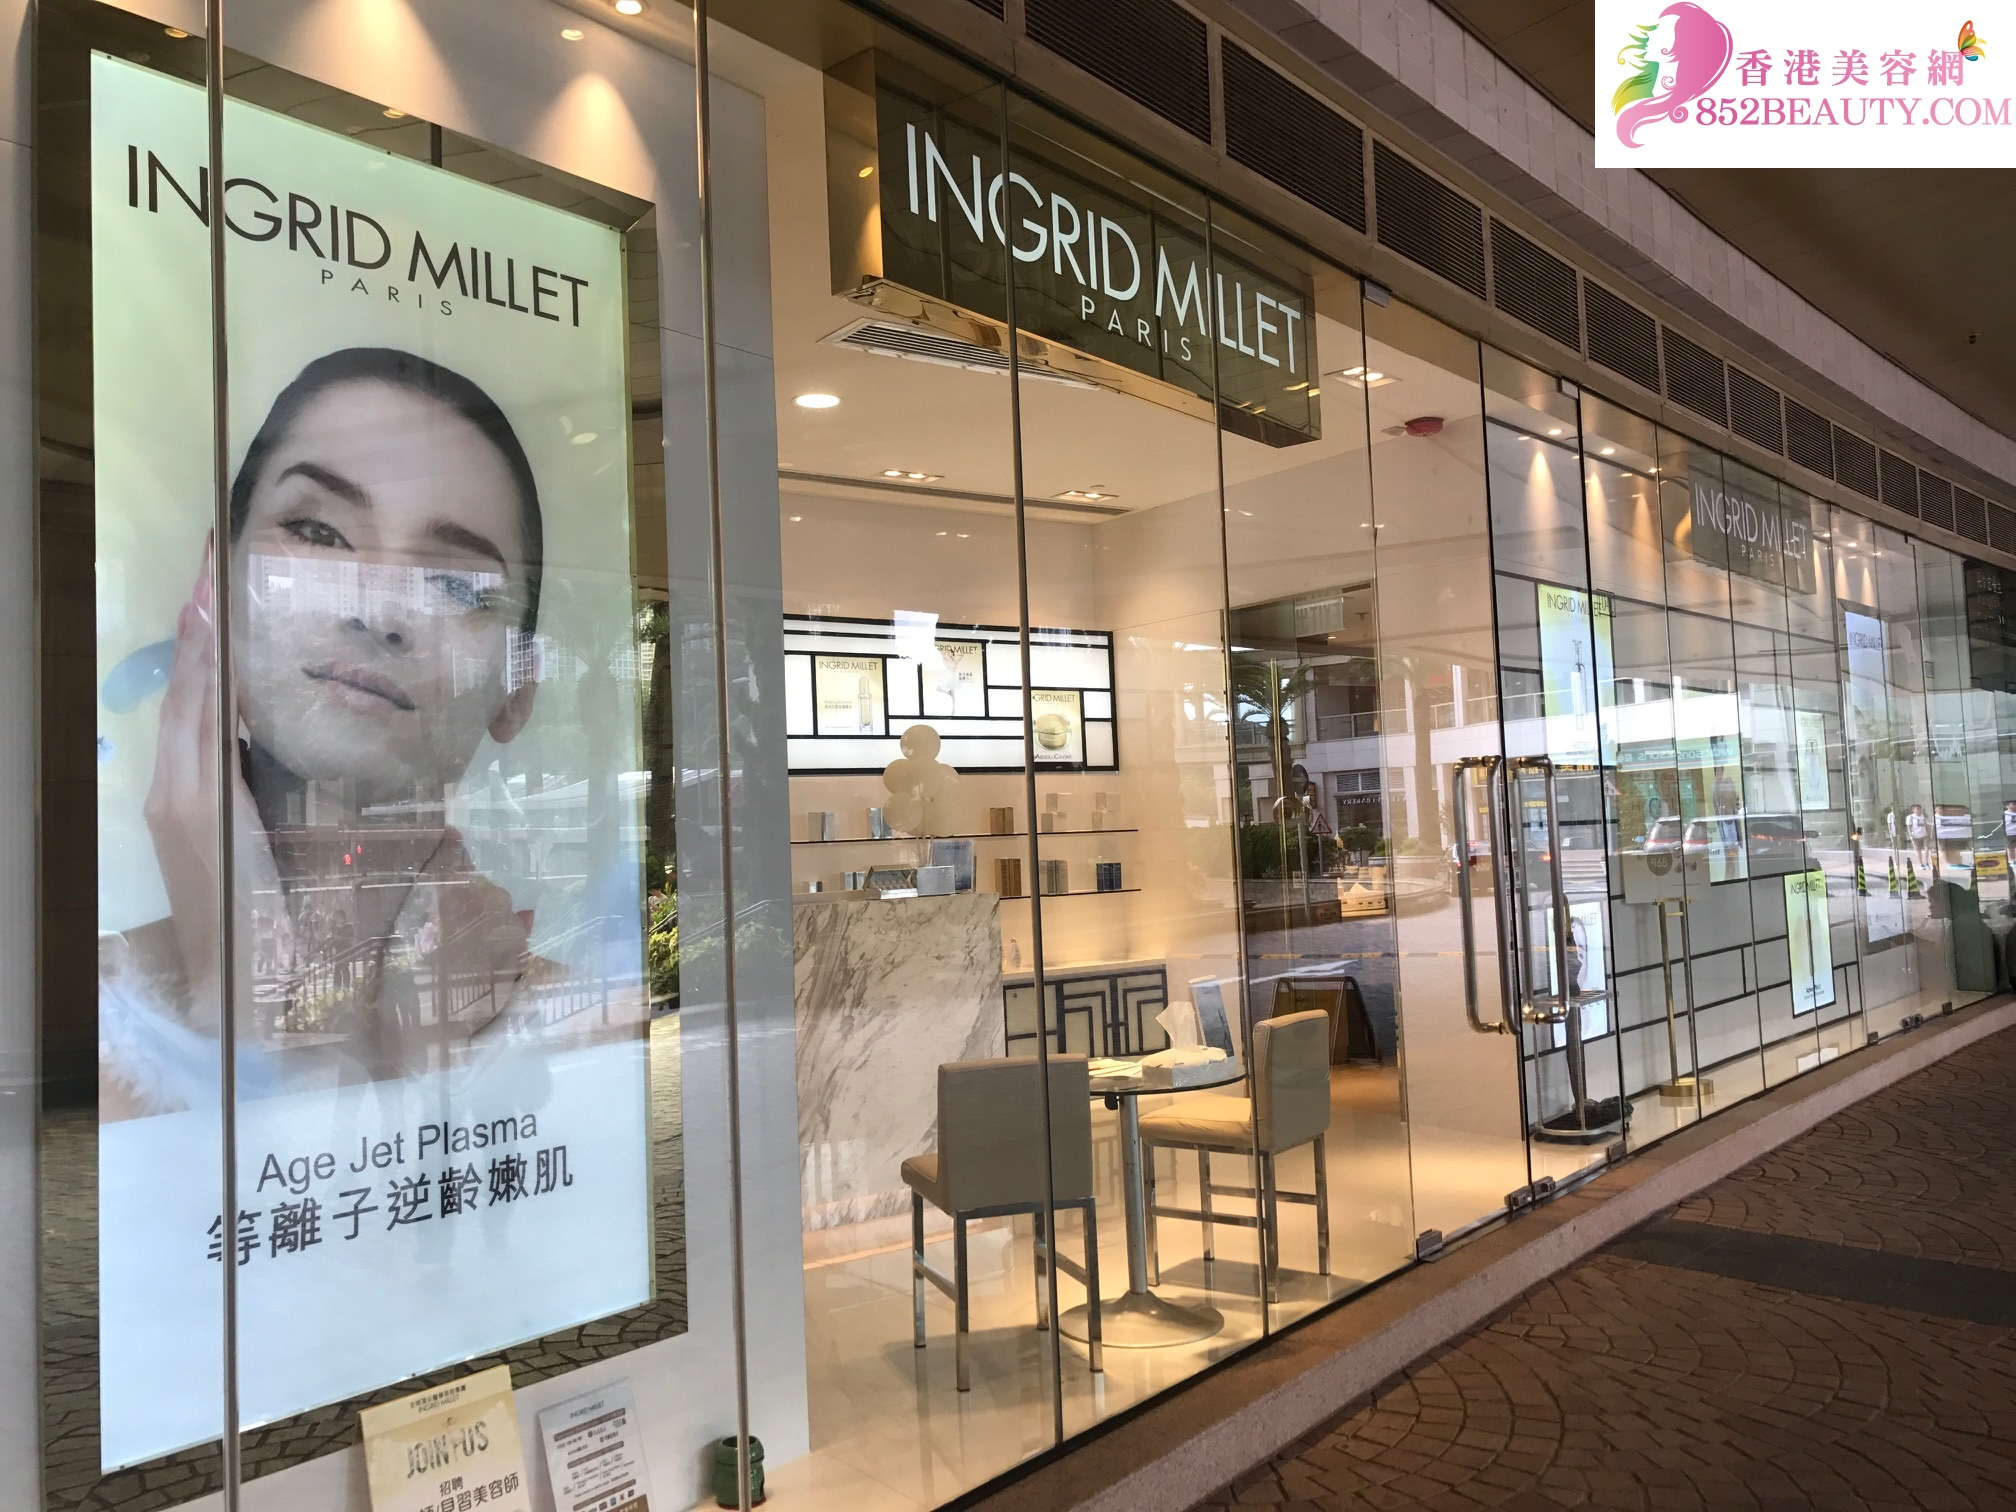 美容院 Beauty Salon 集團INGRID MILLET PARIS (火炭) @ 香港美容網 HK Beauty Salon